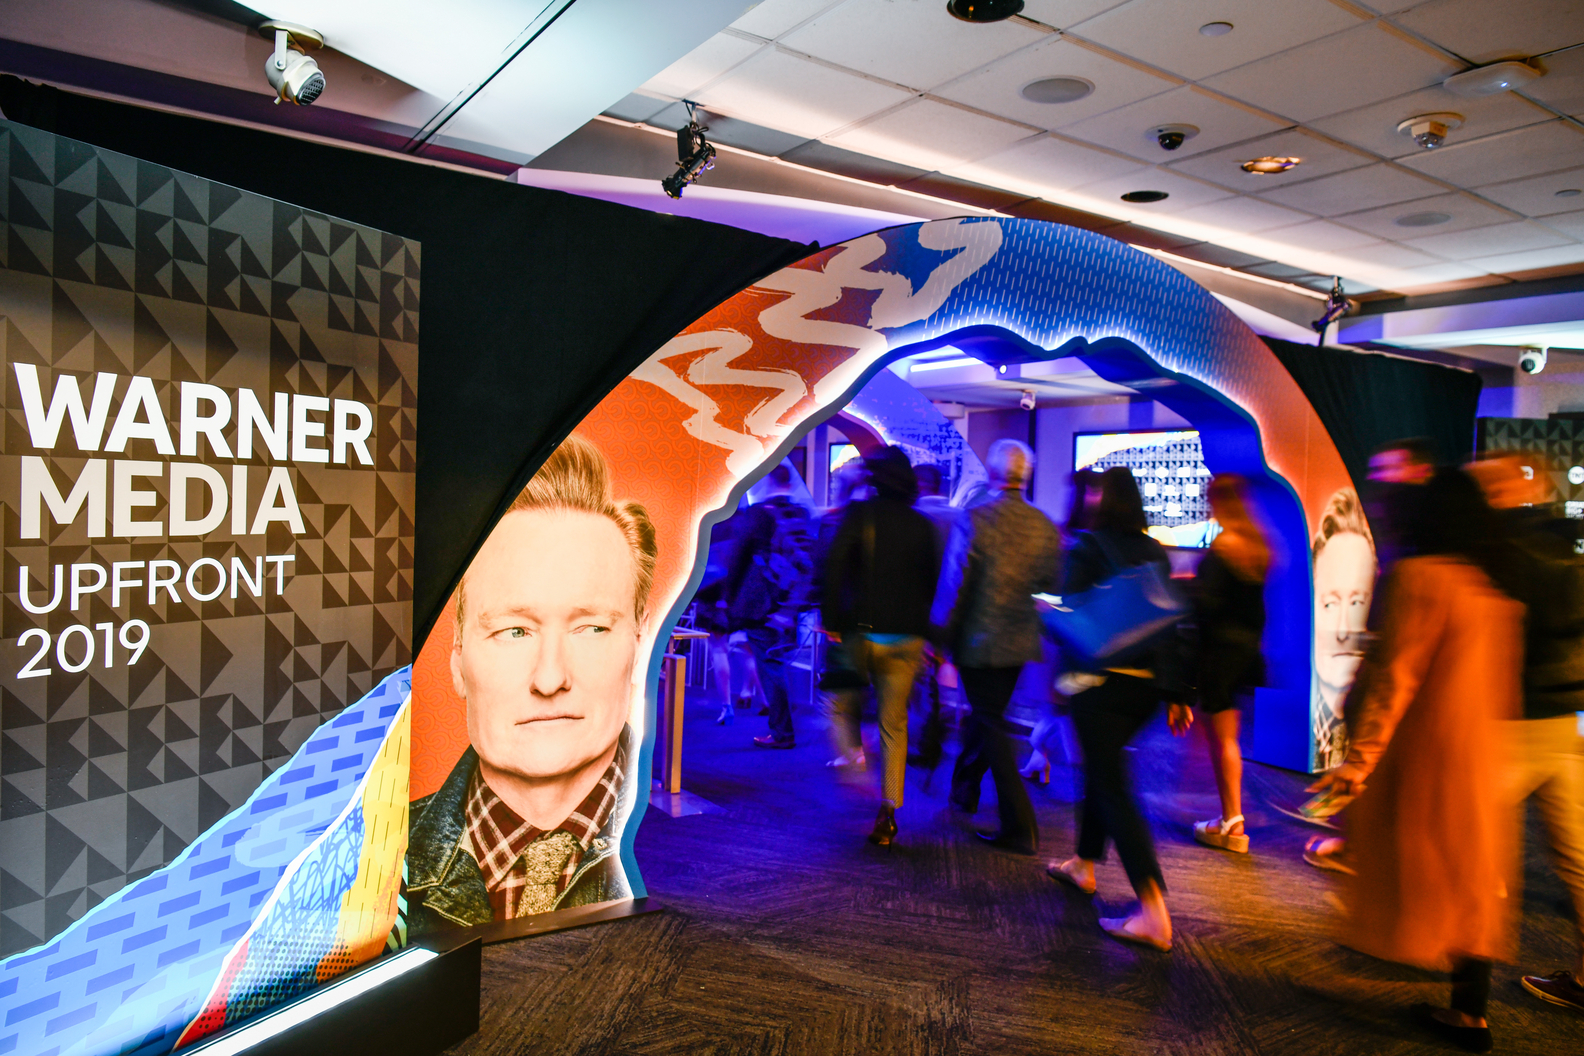 WarnerMedia Upfront 2019 at The Theater at Madison Square Garden on May 15, 2019 in New York City.